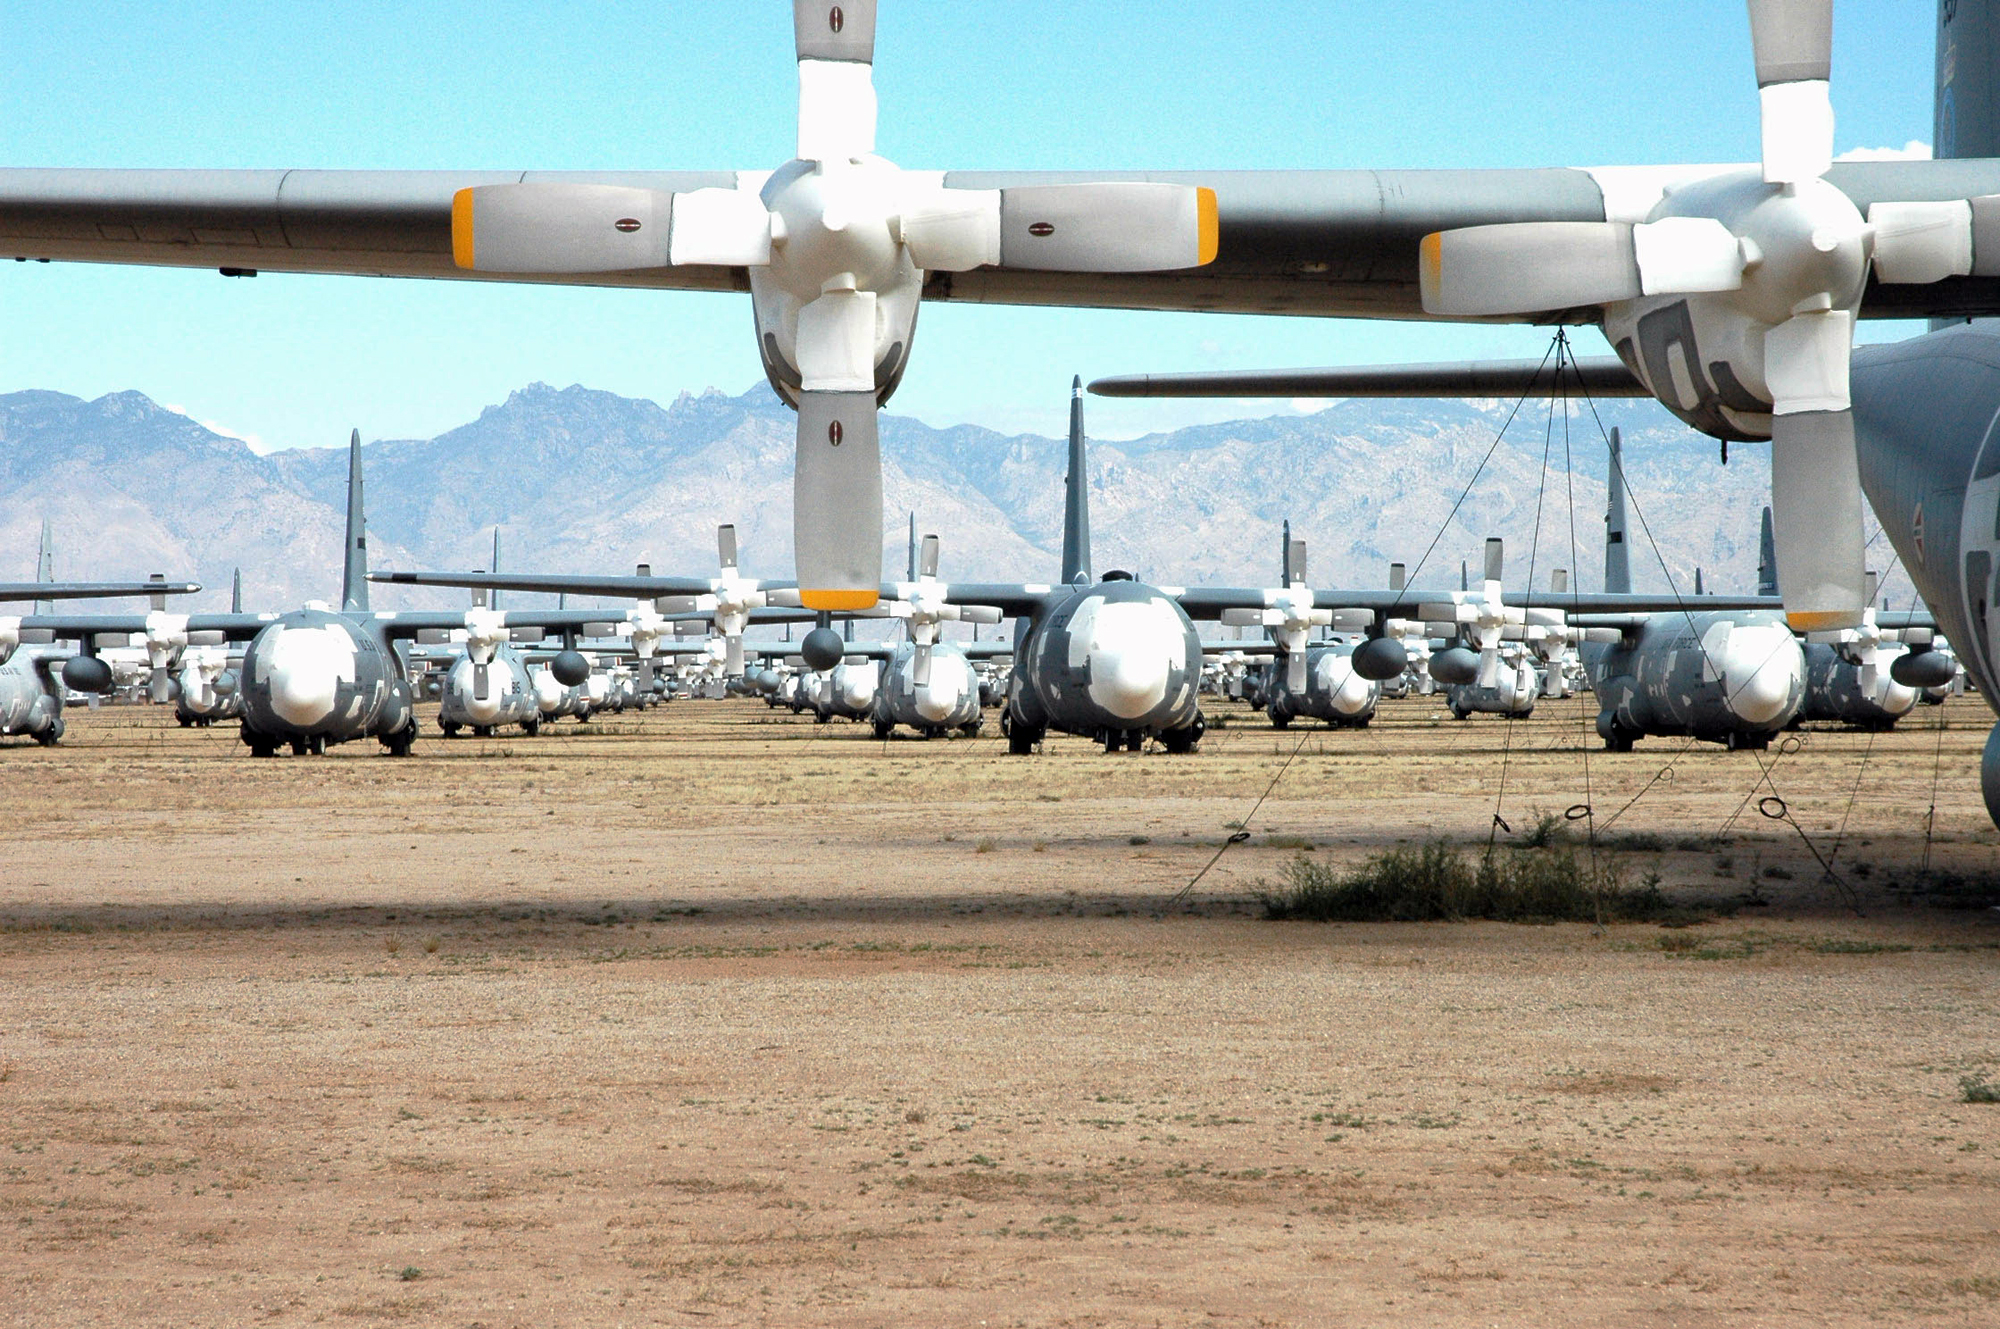 tucson helicopter with Historic Military Aircraft Find New Life Tucsons Boneyard on Aircraft Graveyard Holds Hidden Gems Tell Story American Air Force Armed Teeth Fight  munism besides 20 Cutaway Drawings That Will Slice Open Your Mind further File CH 46D of HC 11 after crashing on USS Fife  DD 991  1986 additionally Grand Canyon Super Deluxe Air Helicopter Tour together with Gis Helps.